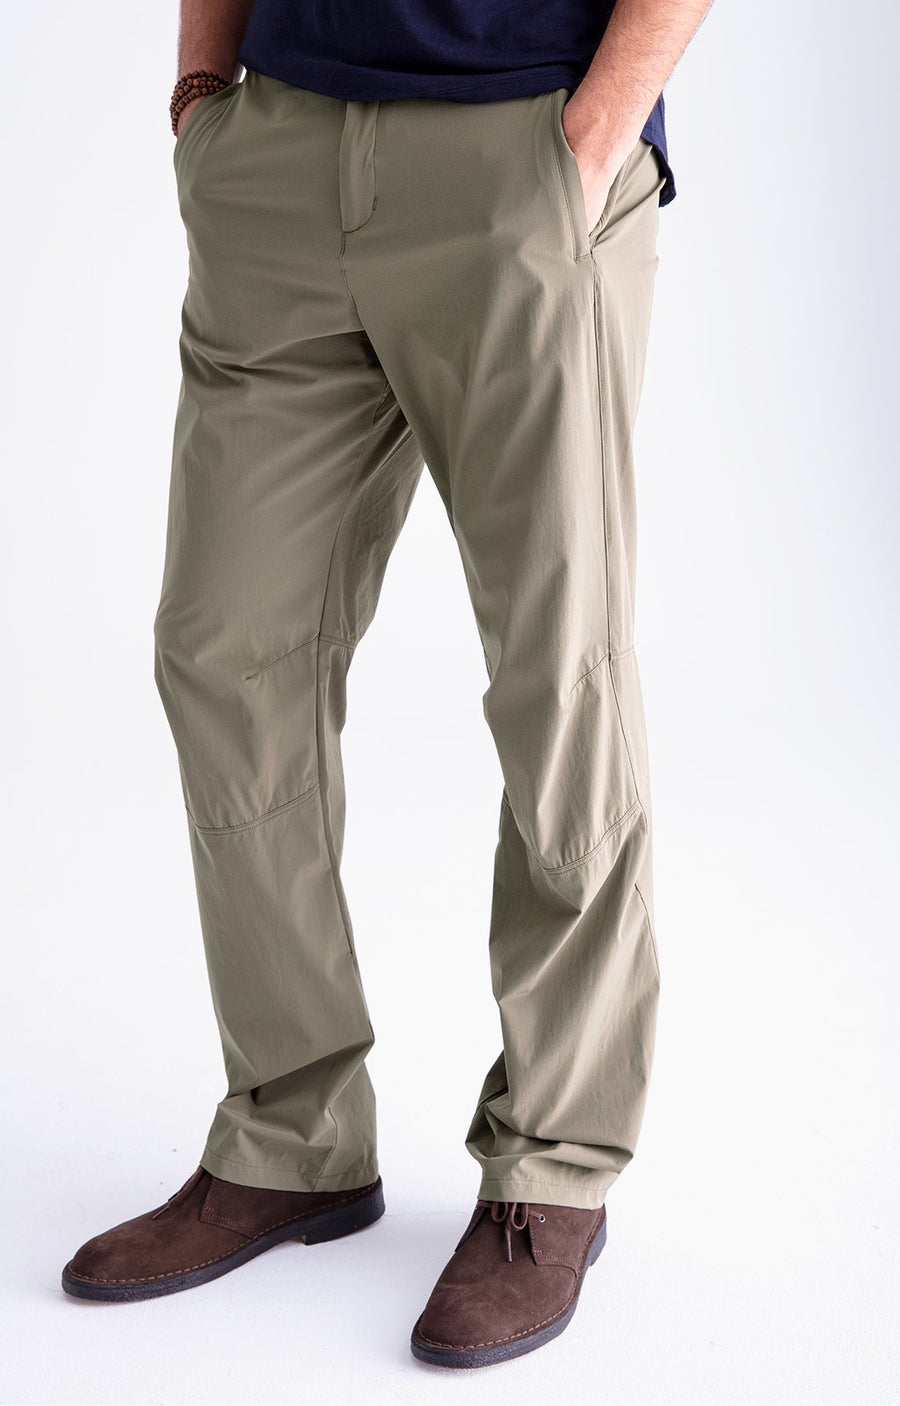 Paskho Wild – Long-Haul Flight Pants in Khaki